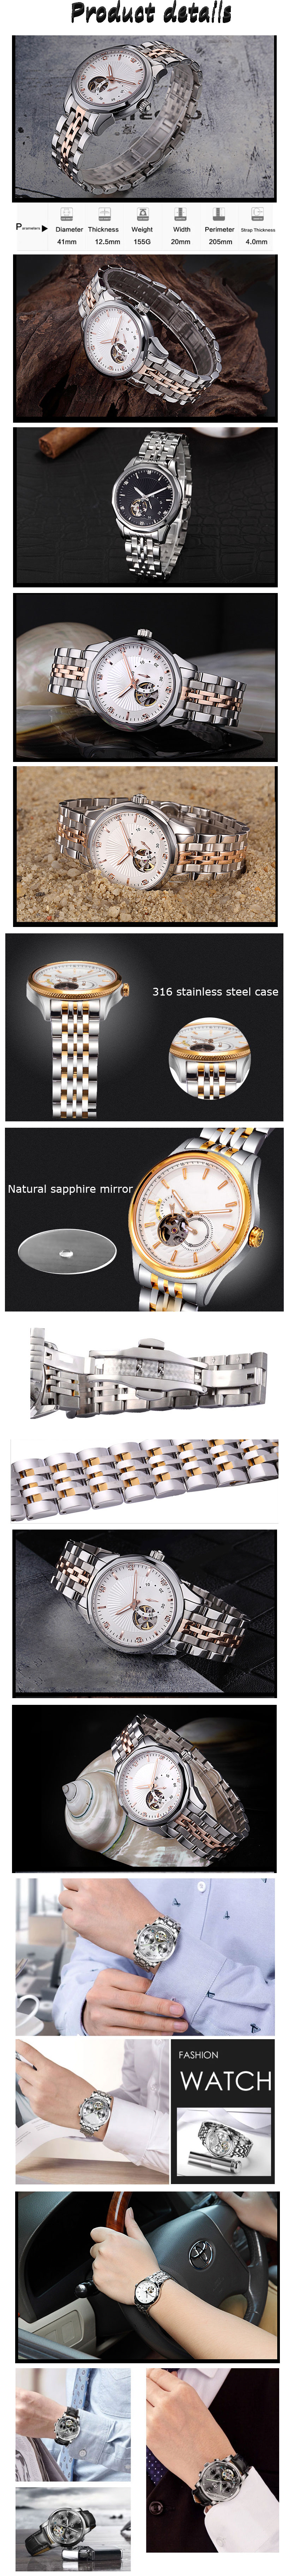 Mechanical wrist watches stainless steel 316l watch women luxury watch